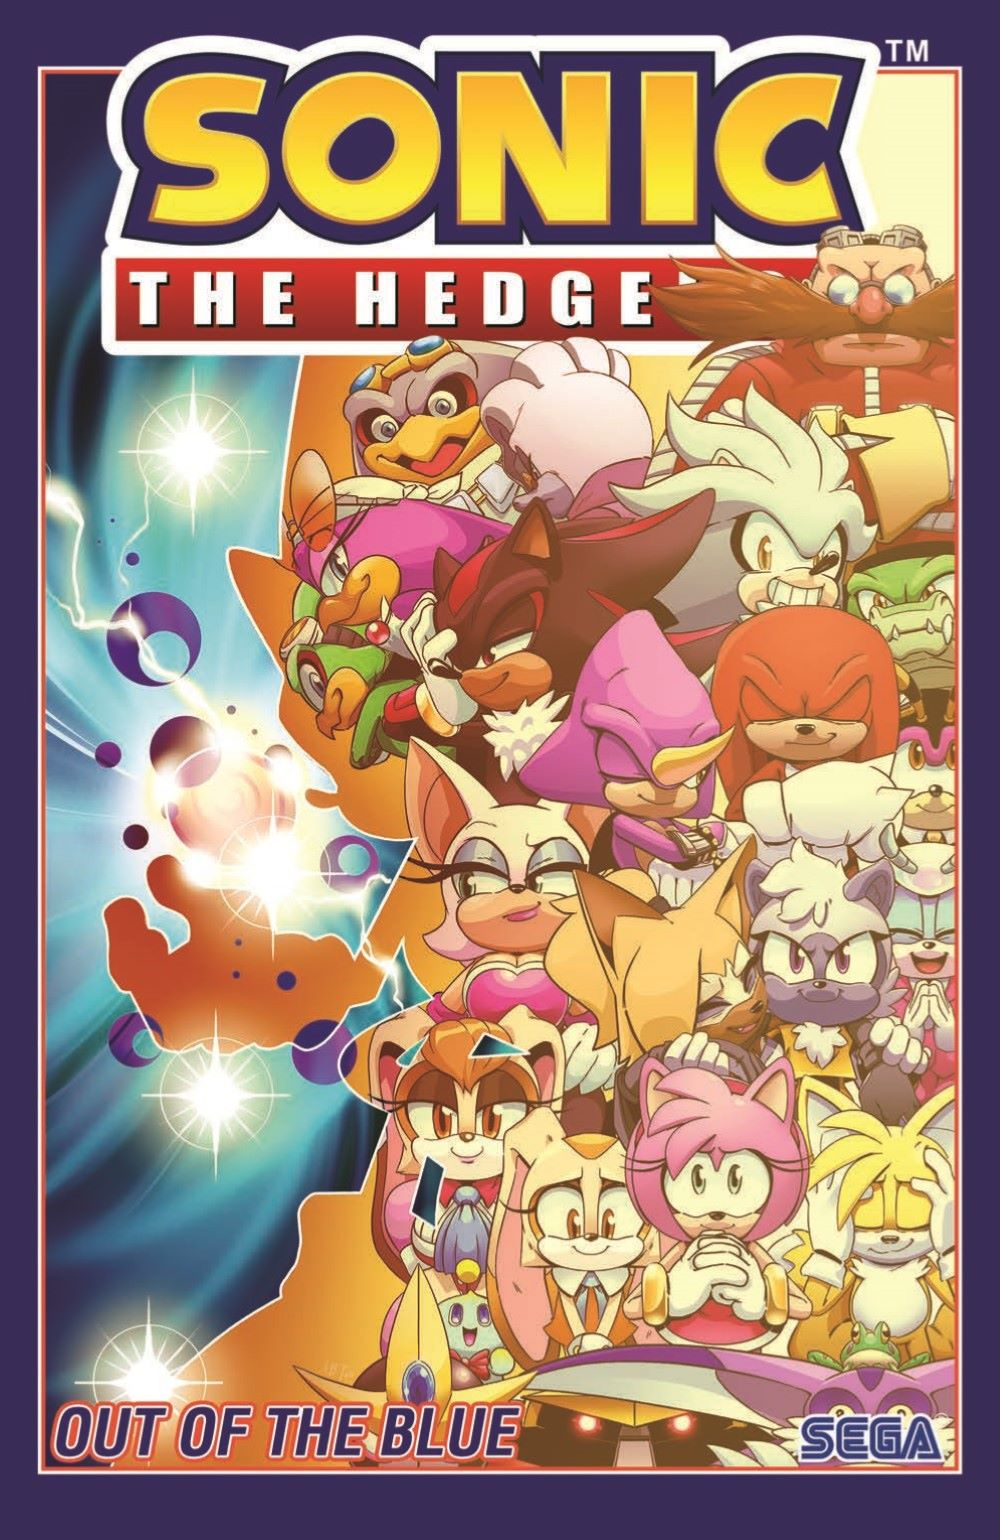 Sonic_V08_TPB_pr-1 ComicList Previews: SONIC THE HEDGEHOG VOLUME 8 OUT OF THE BLUE TP